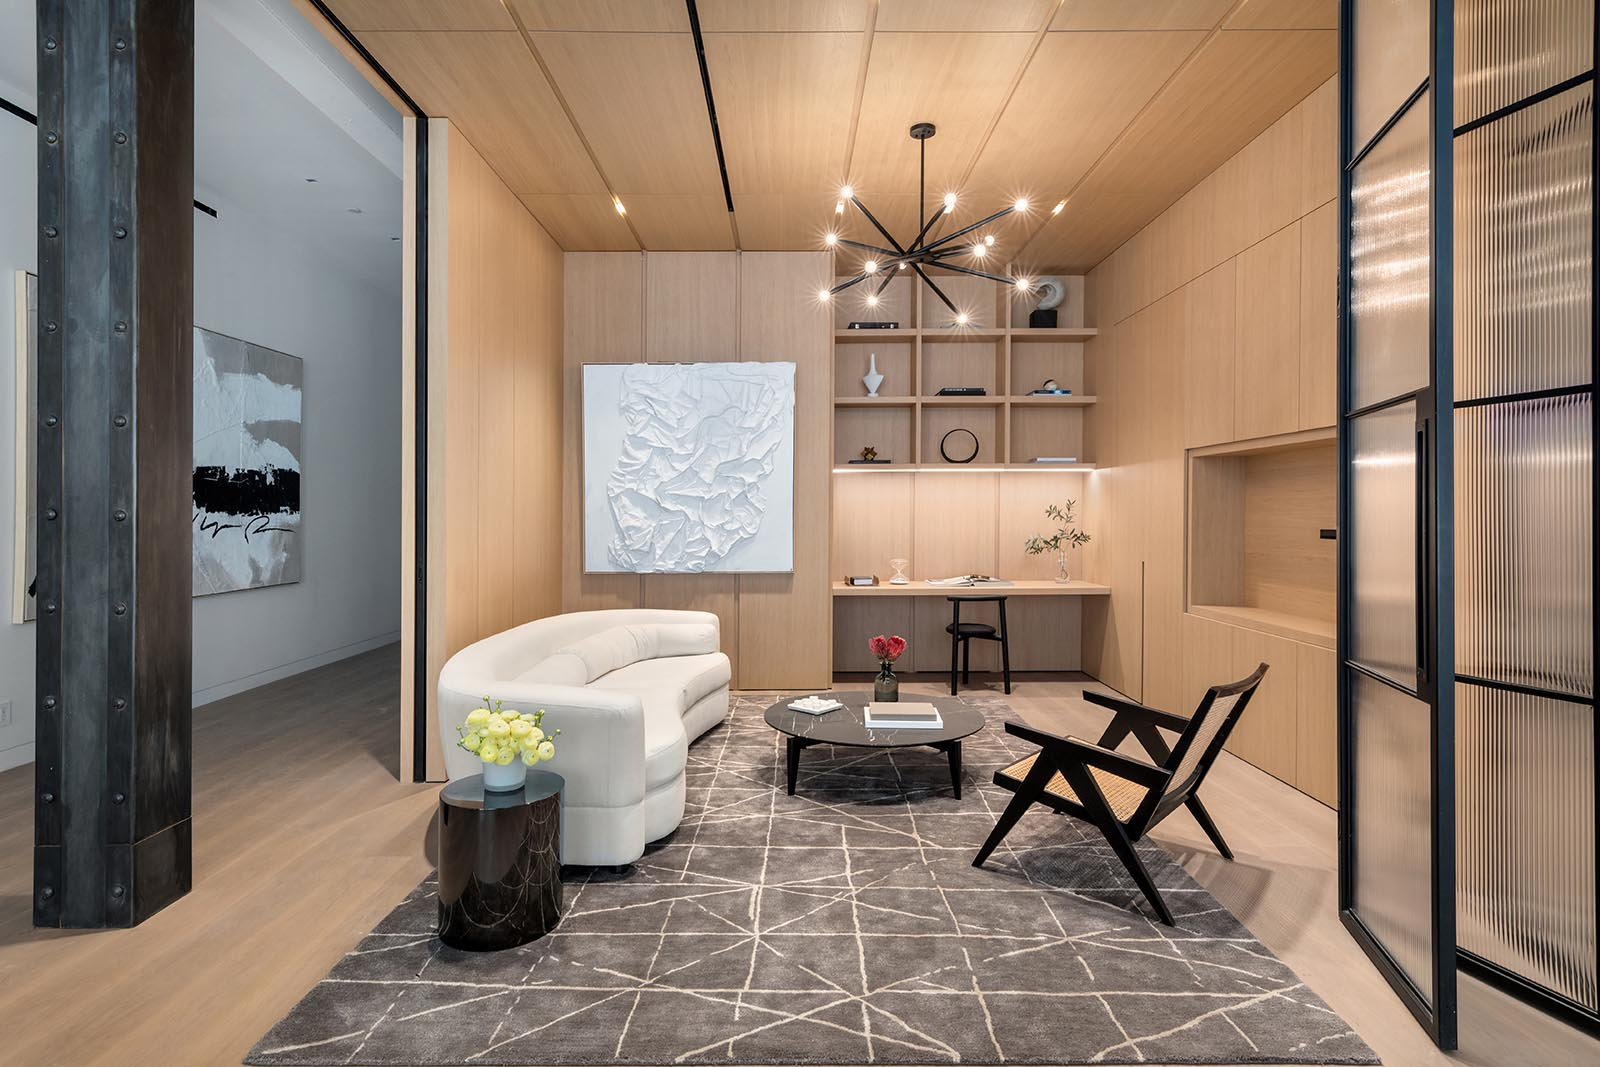 A spacious library with a built-in desk, is clad in millwork that was made in Italy by Canova, and includes floor-to-ceiling glass and steel casement folding doors, creating an open and versatile additional living space.